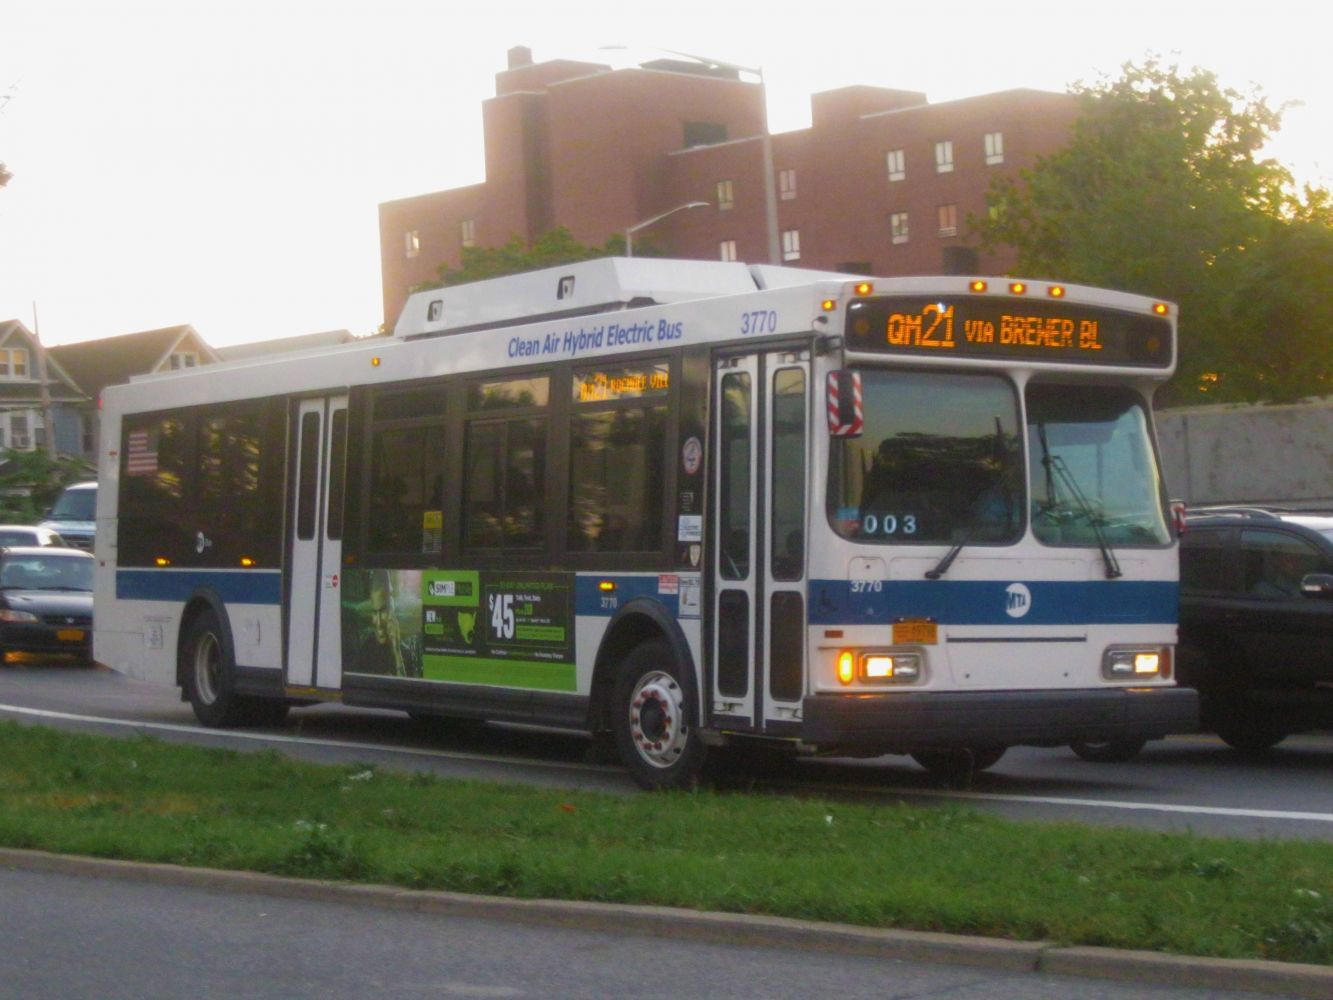 2007 Orion VII Hybrid 3770 on the QM21 at Eliot Avenue/ Queens Blvd